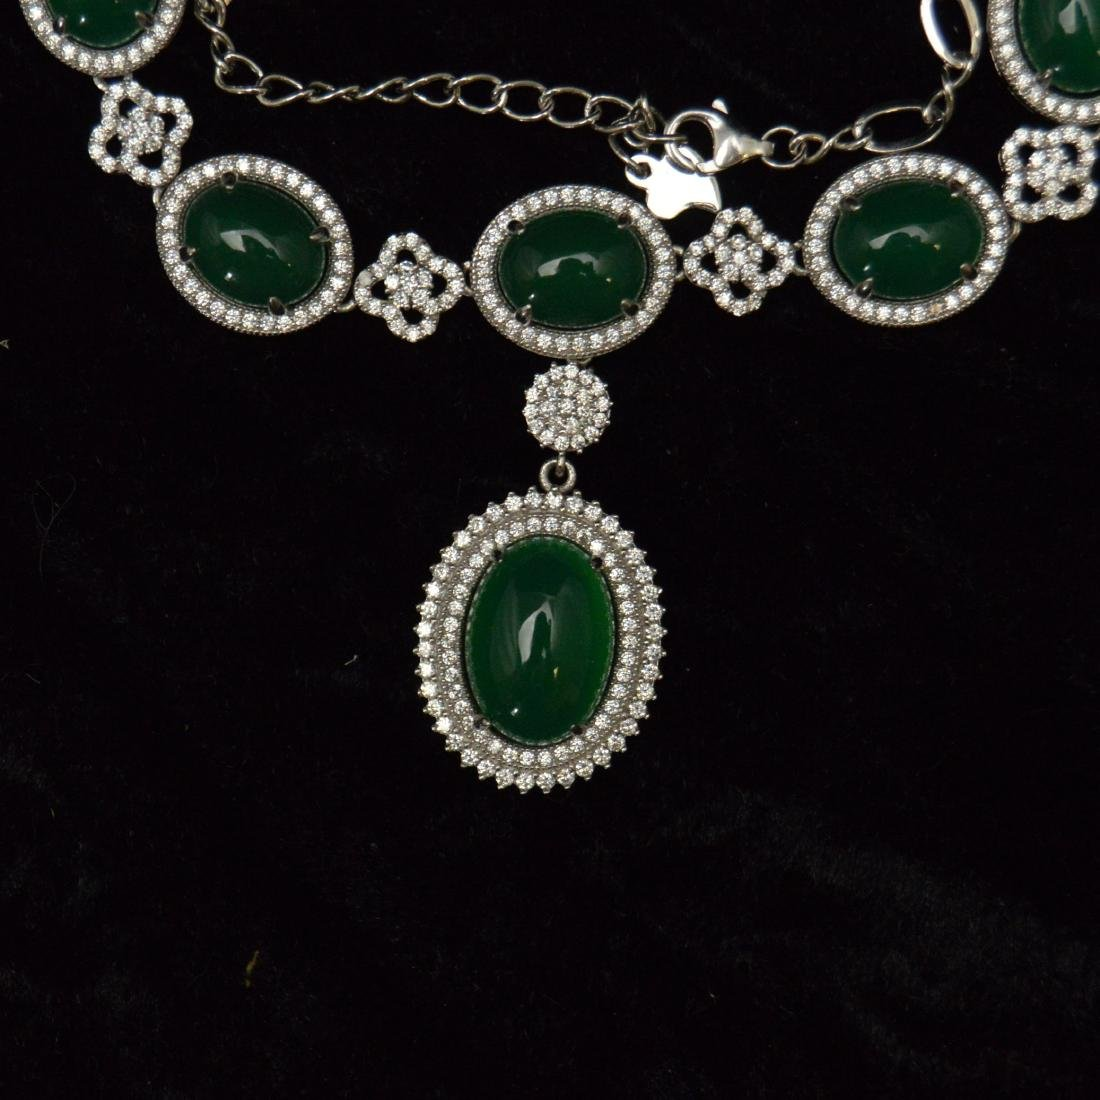 Green Agate Necklace - 5